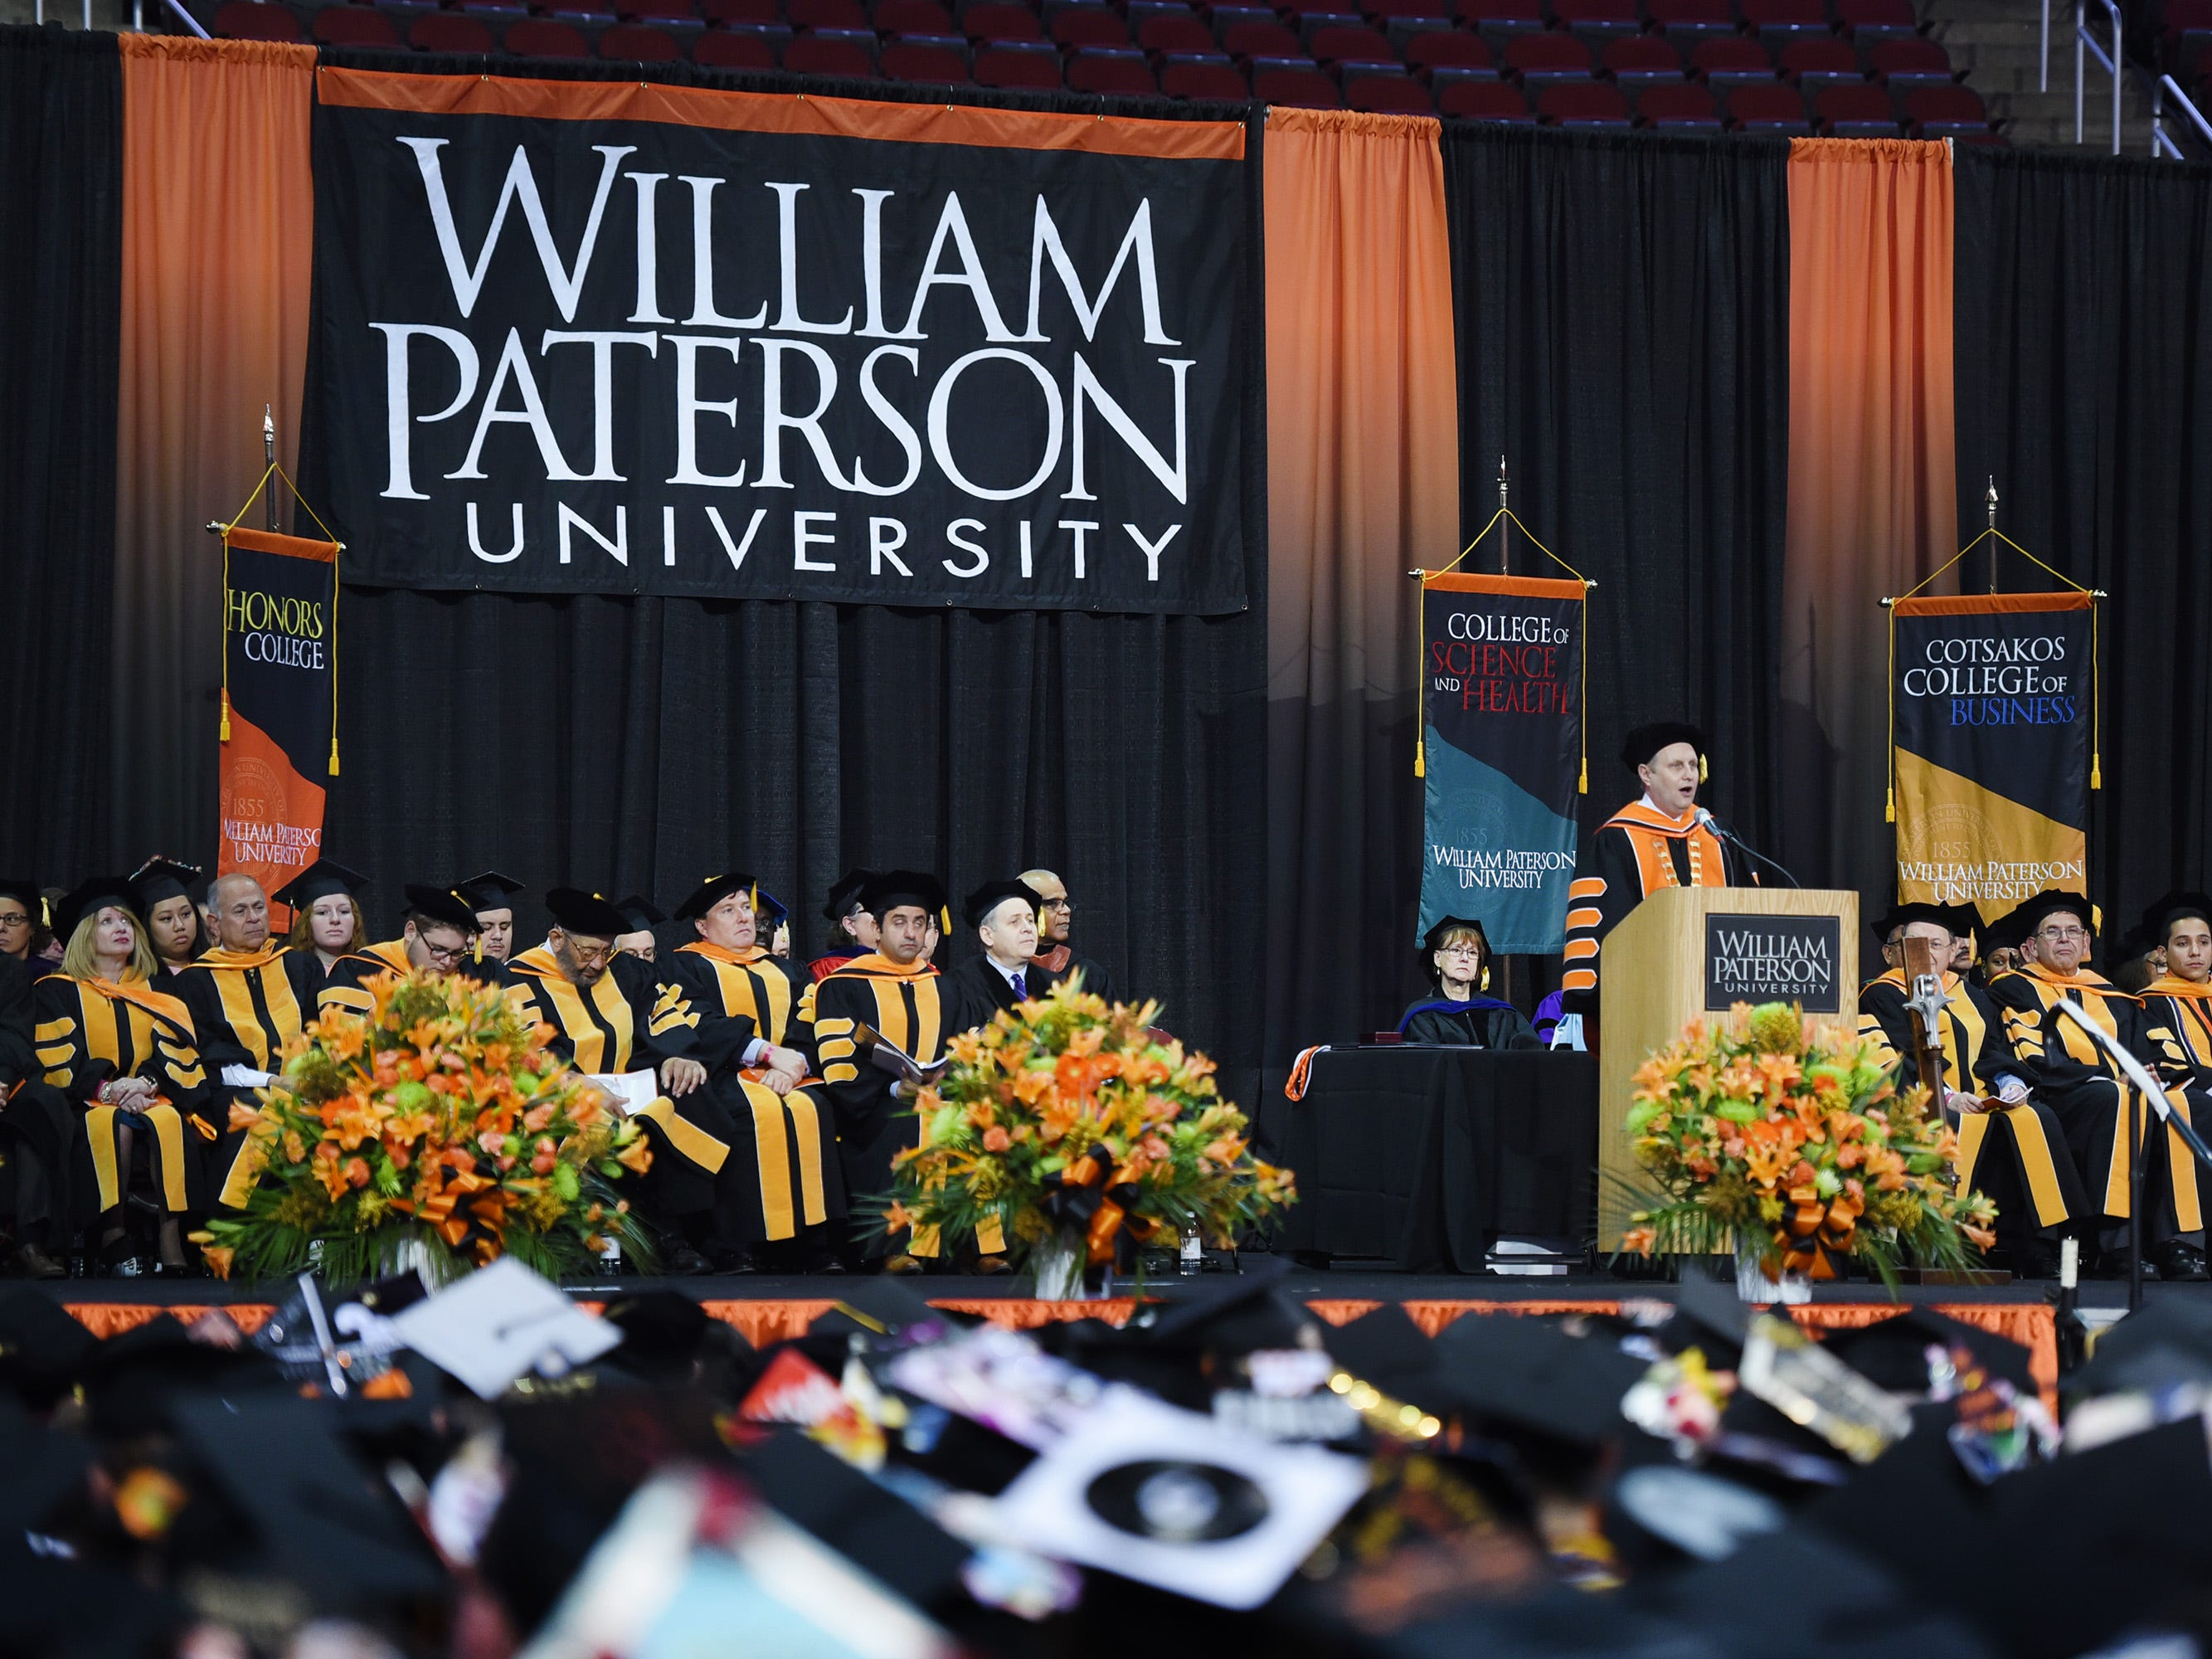 Richard J. Helldobler, PhD, President of the University, gives a a speech during the William Paterson University 2019 Commencement at the Prudential Center in Newark on 05/15/19.